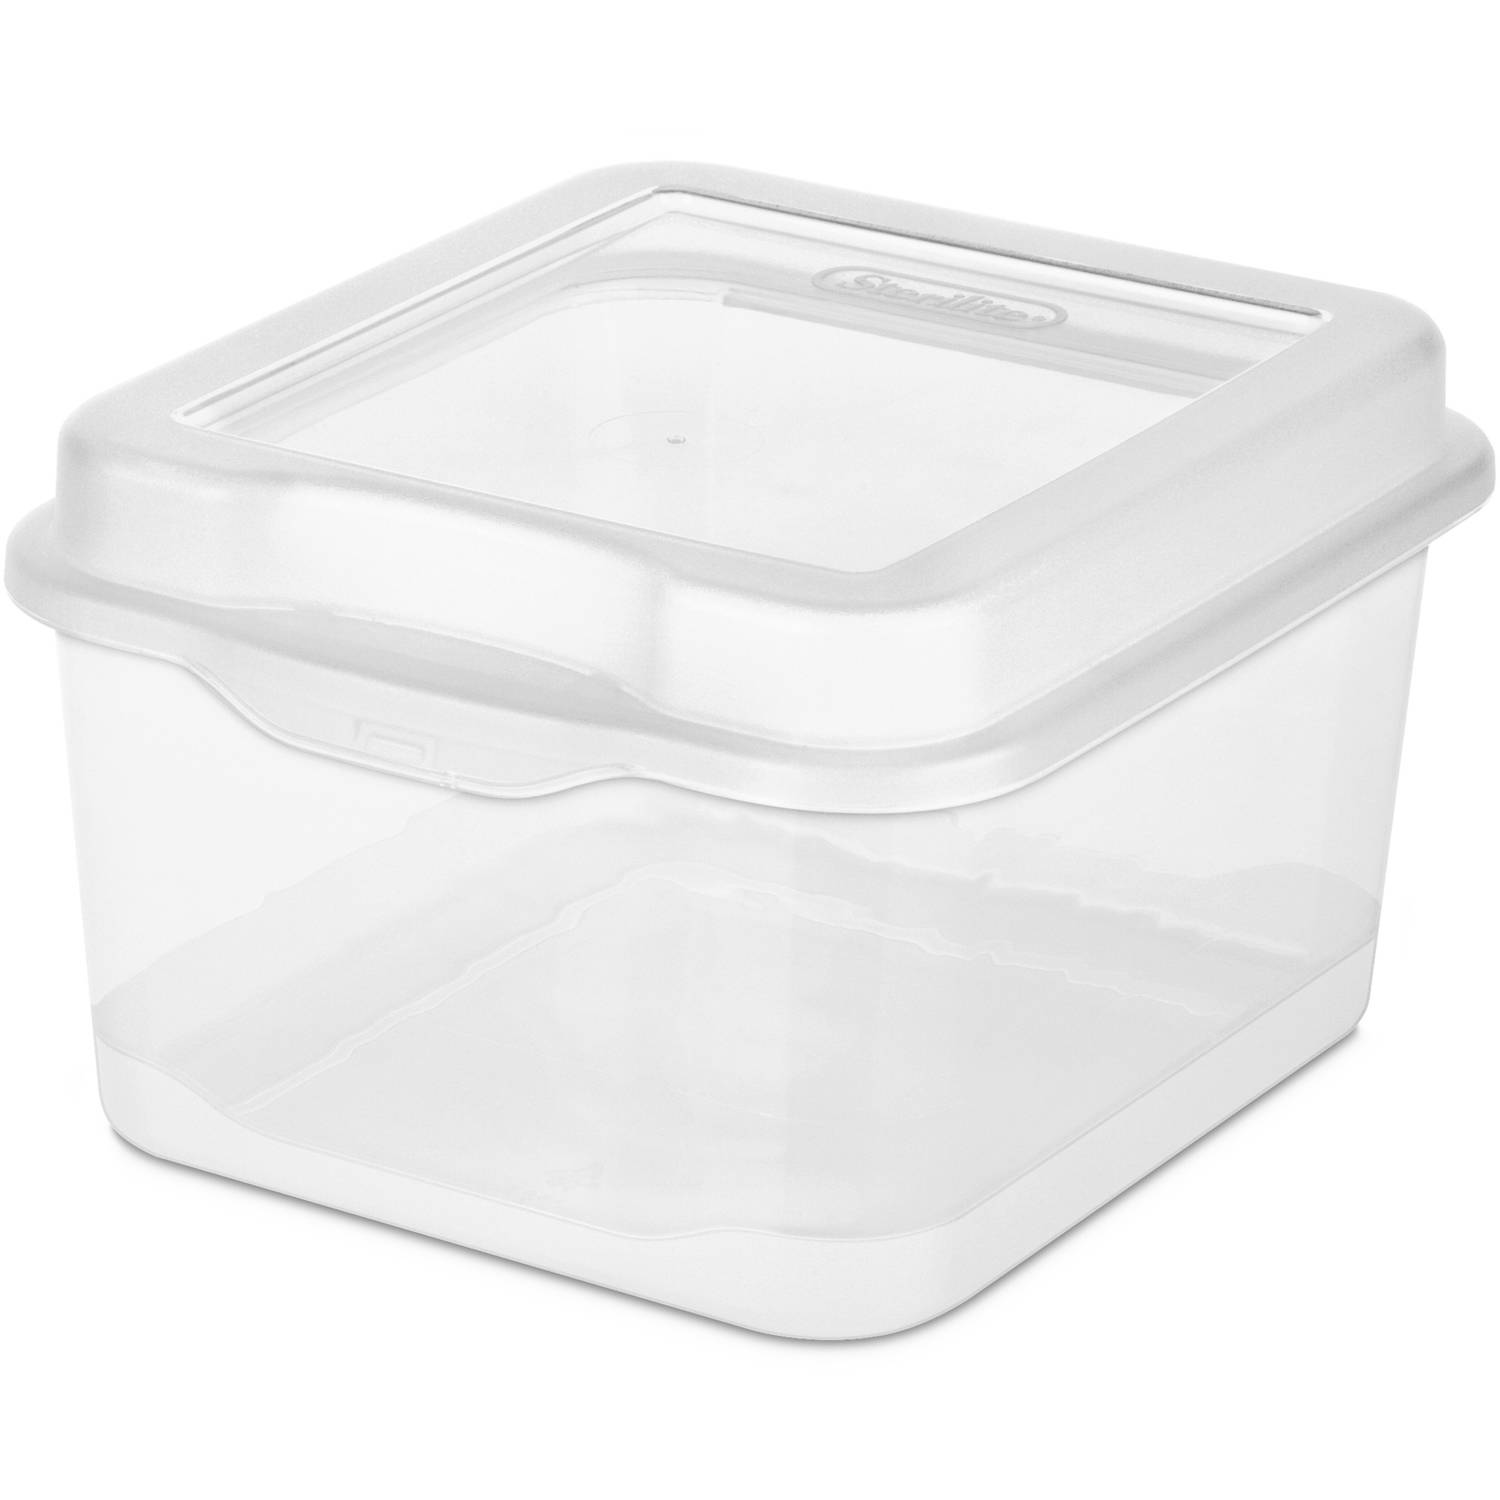 Sterilite 27 Qt./26 L Latch Box, Stadium Blue   Walmart.com